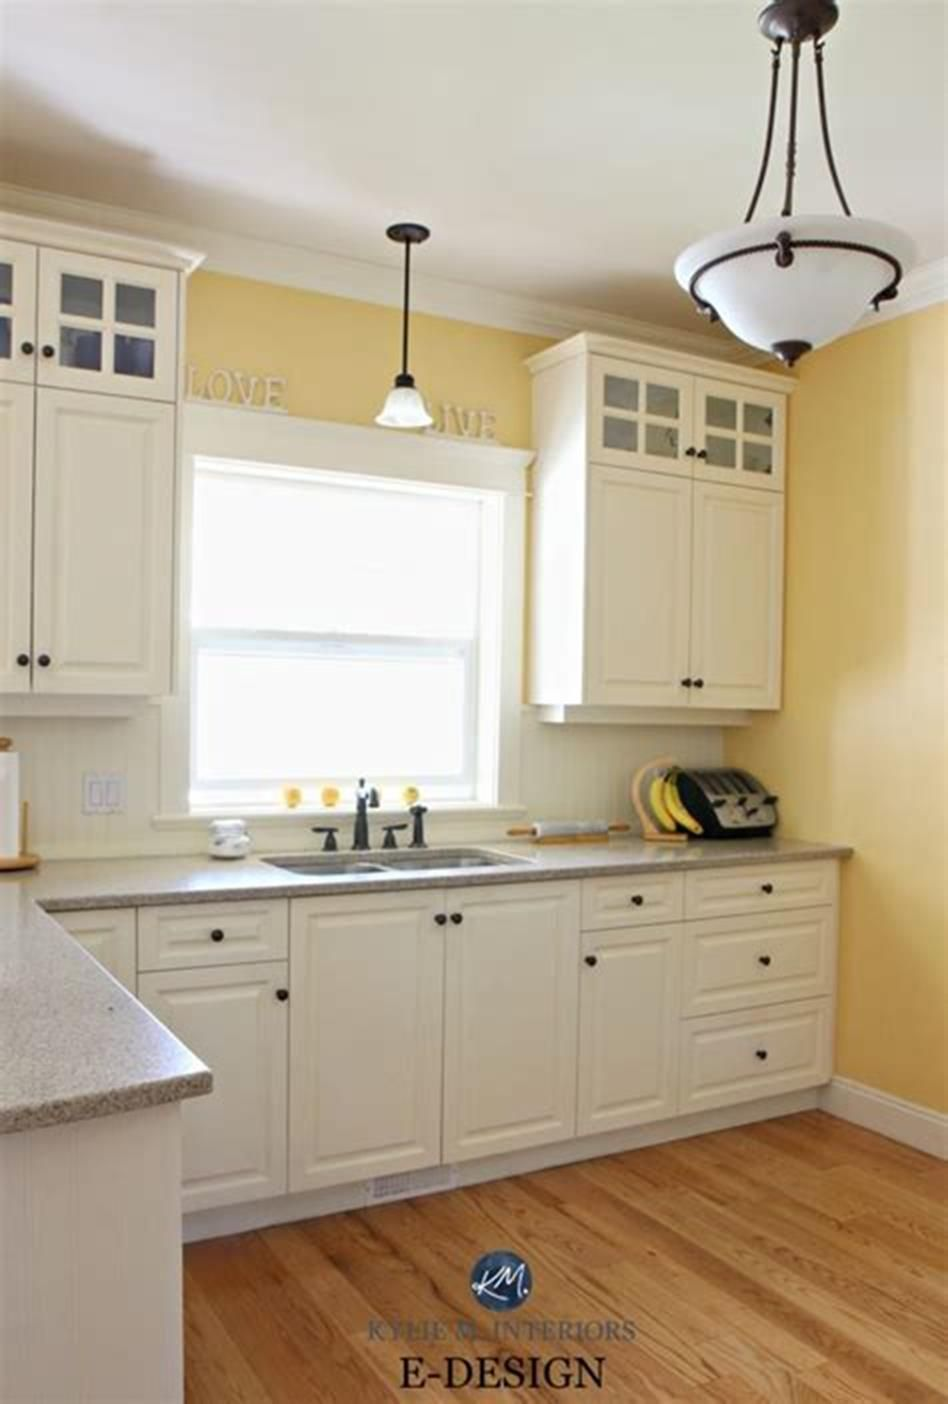 30 Affordable Kitchens With Oak Cabinets Ideas | Yellow ...